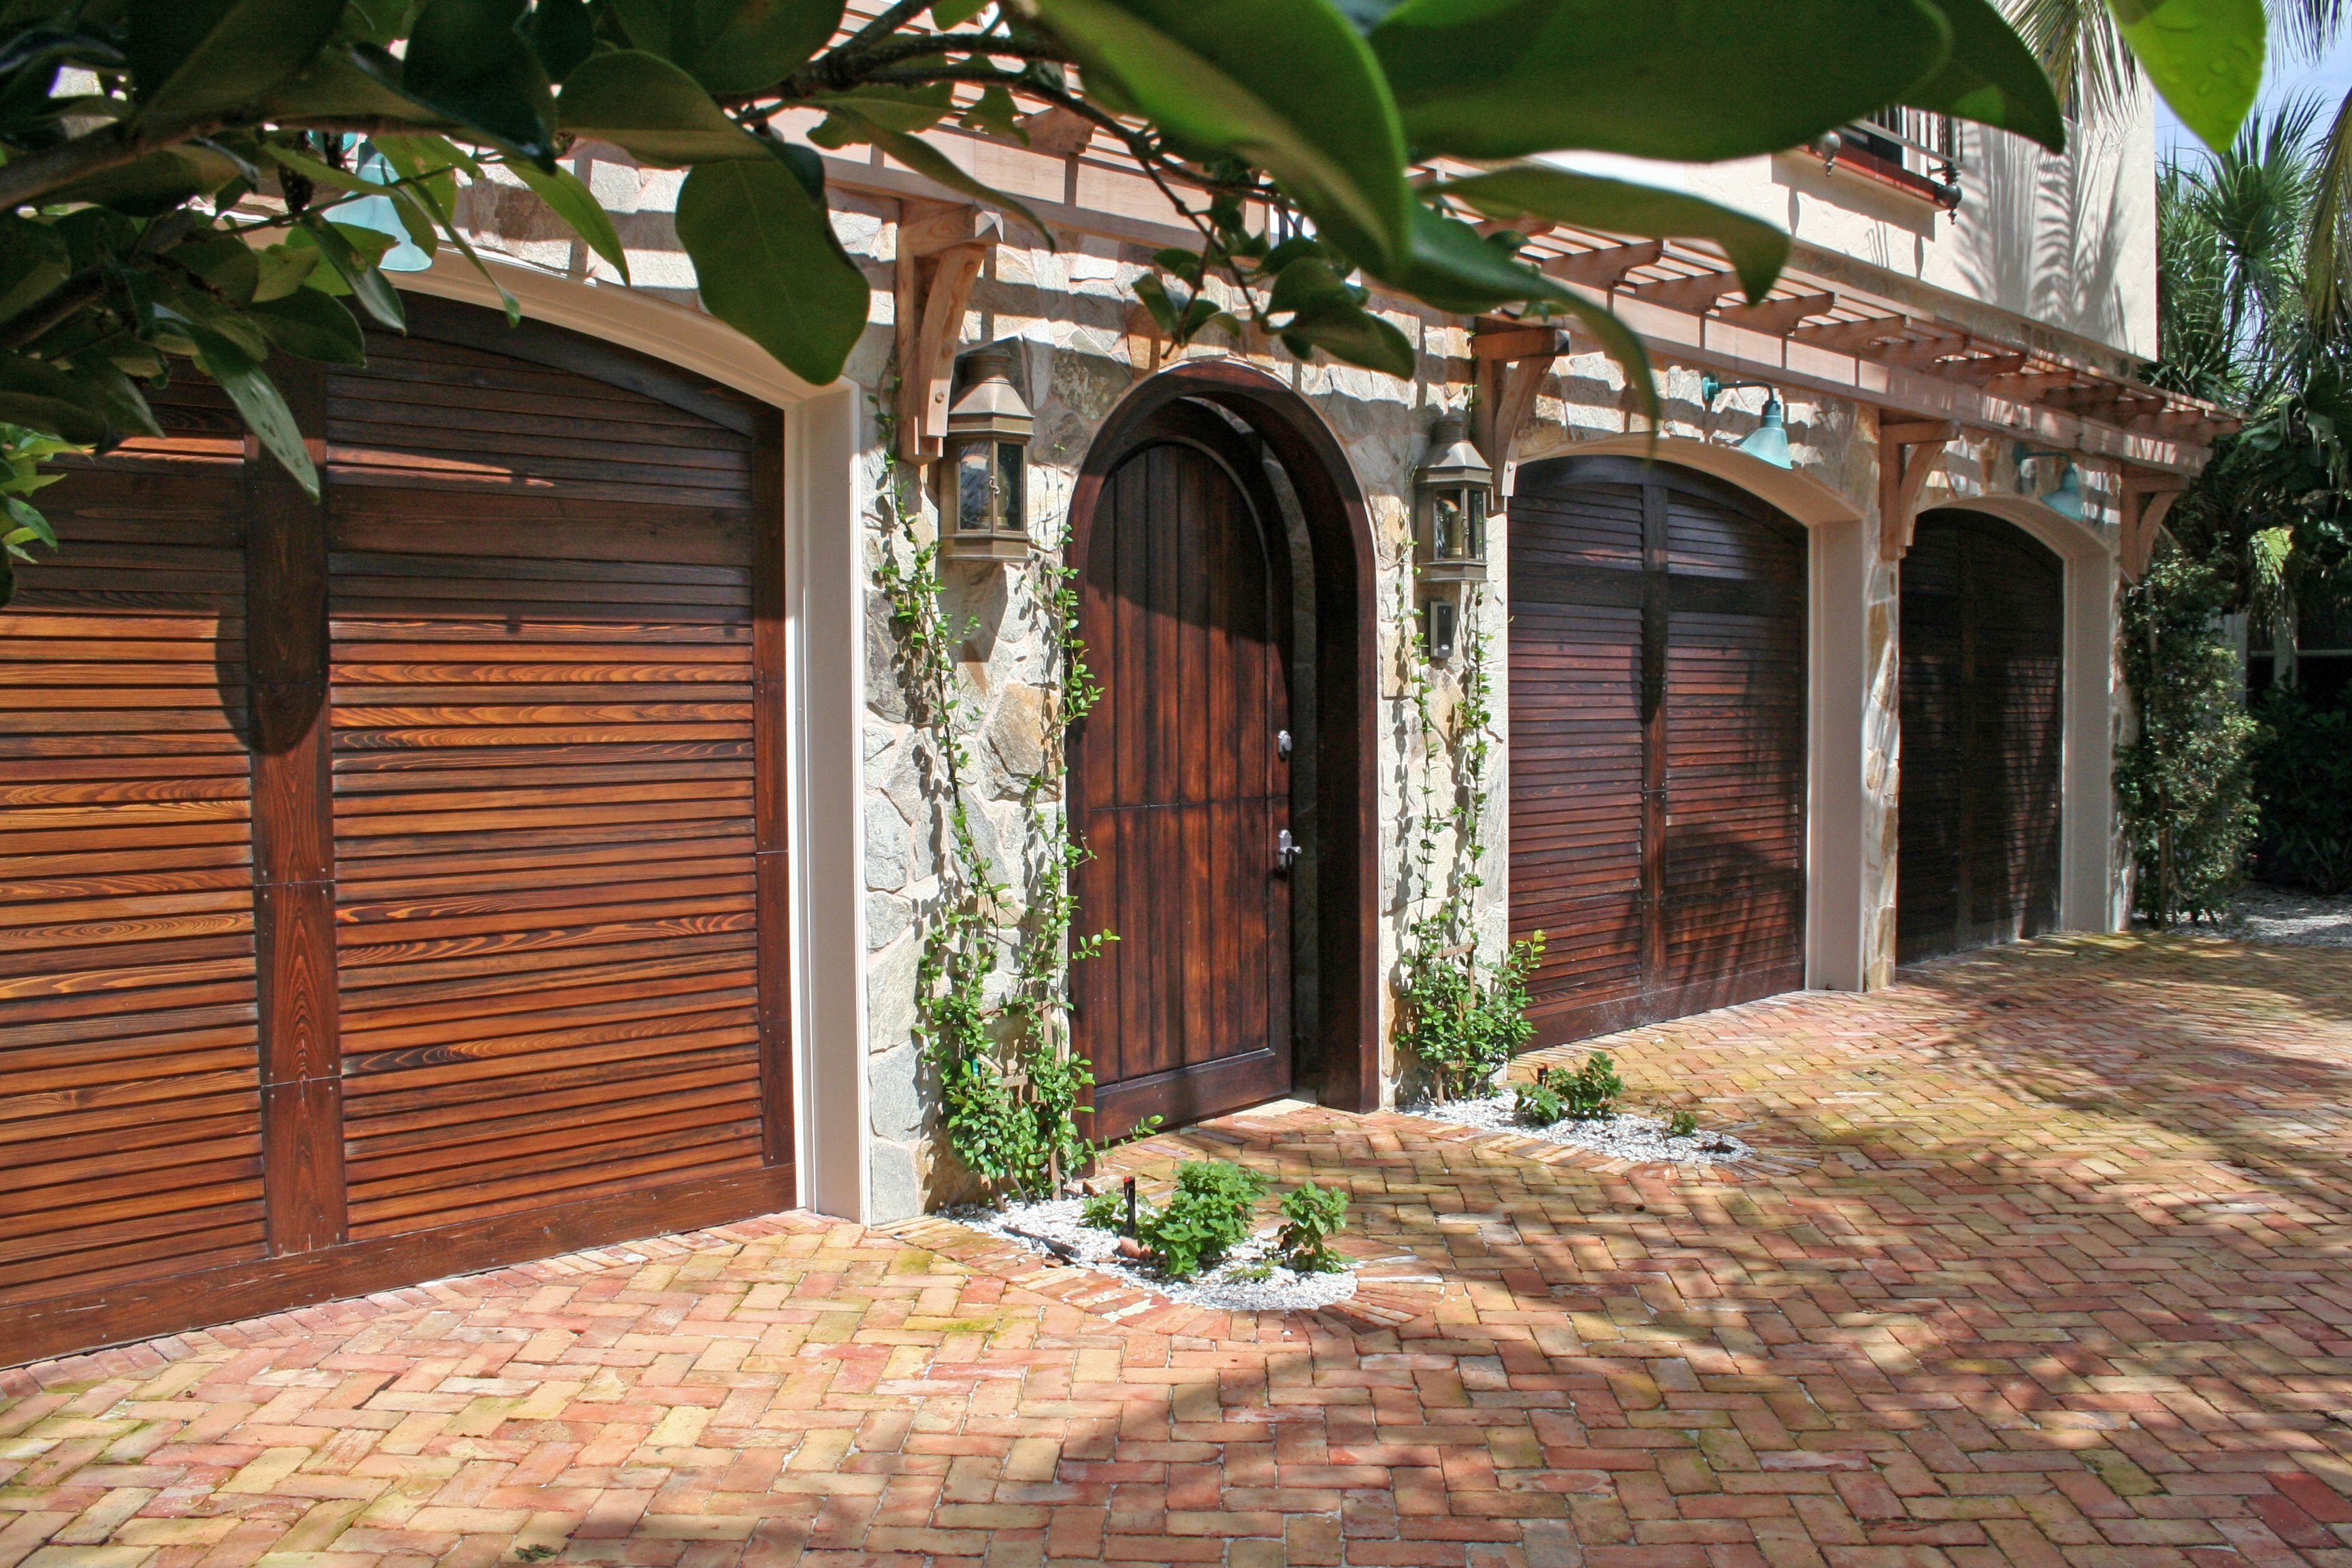 Florida Cypress, Inc. - Select Cypress, Stained,  Garage & Entryway. Ft. Lauderdale, FL.